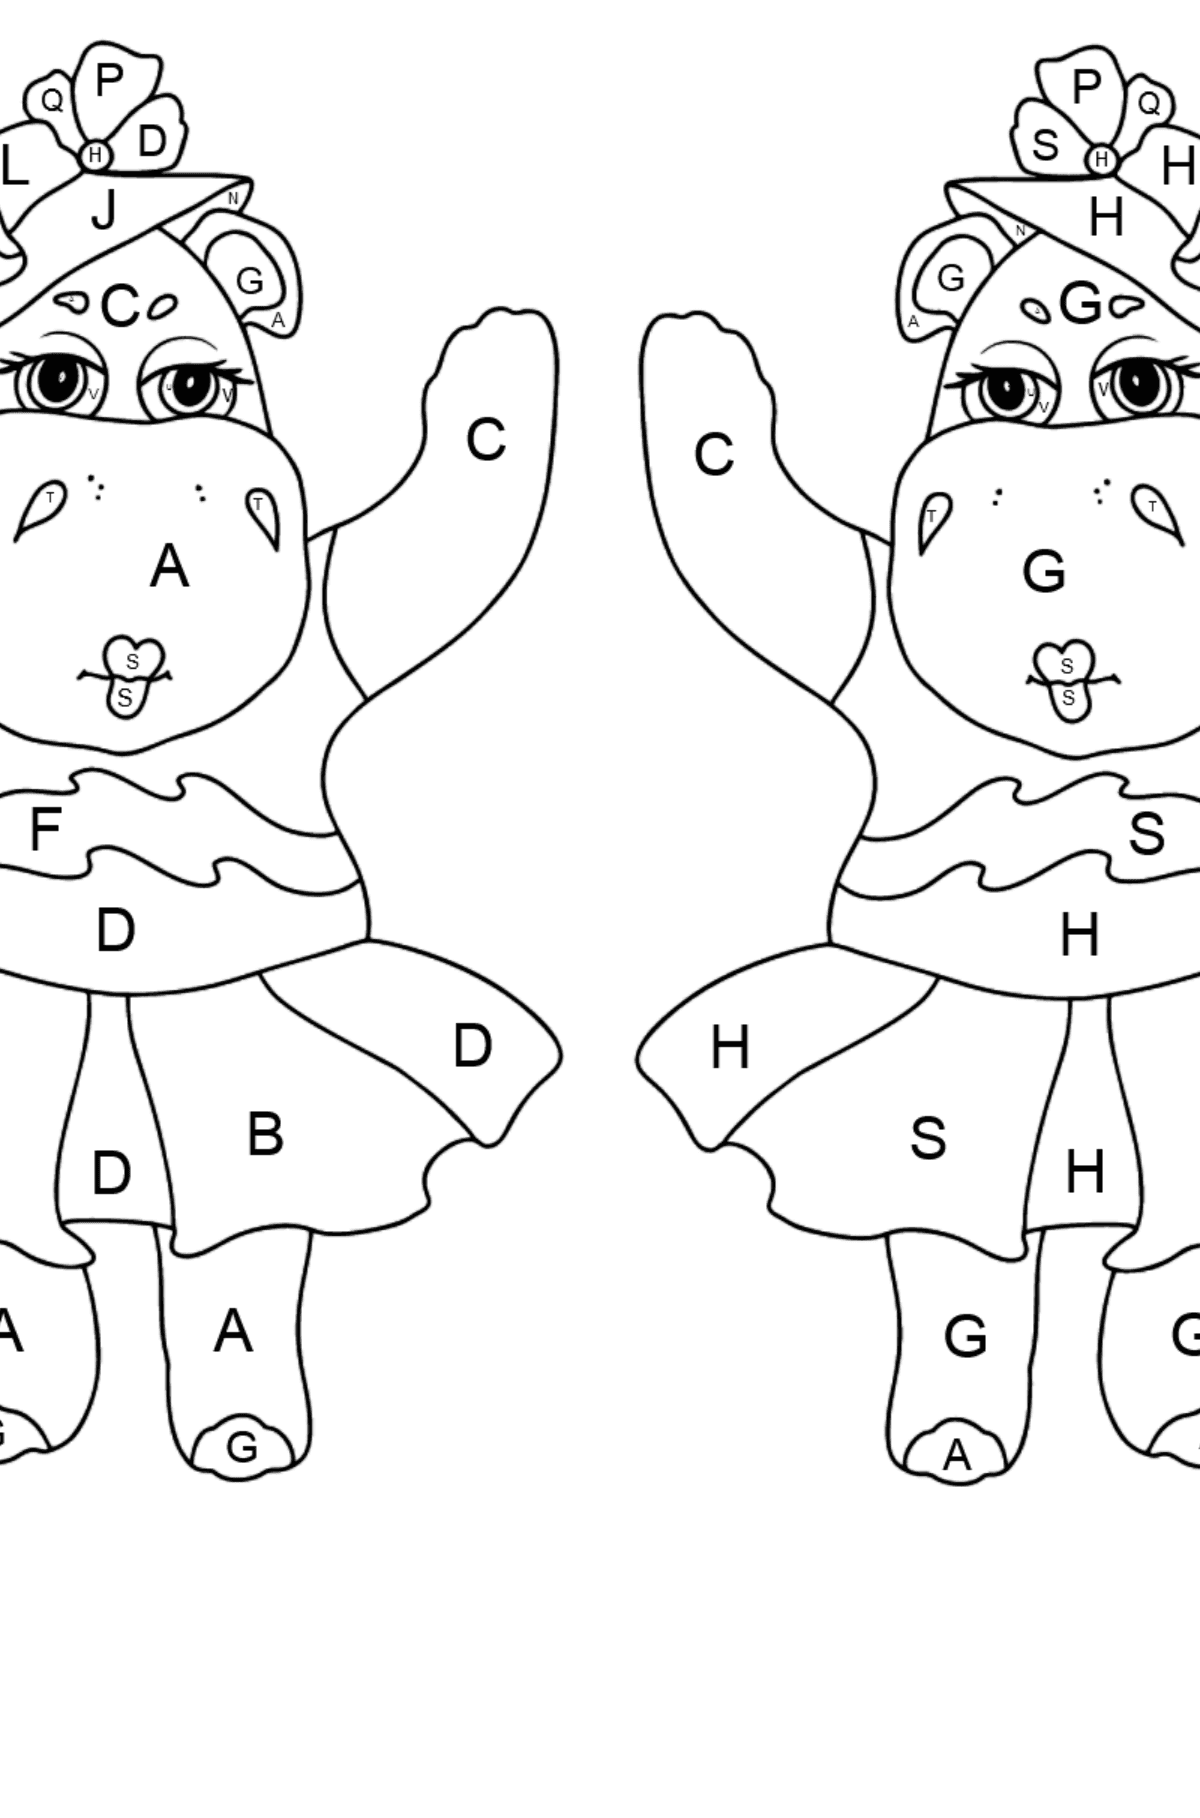 Coloring Page - Hippos are Harvesting the Crops - Coloring by Letters for Kids